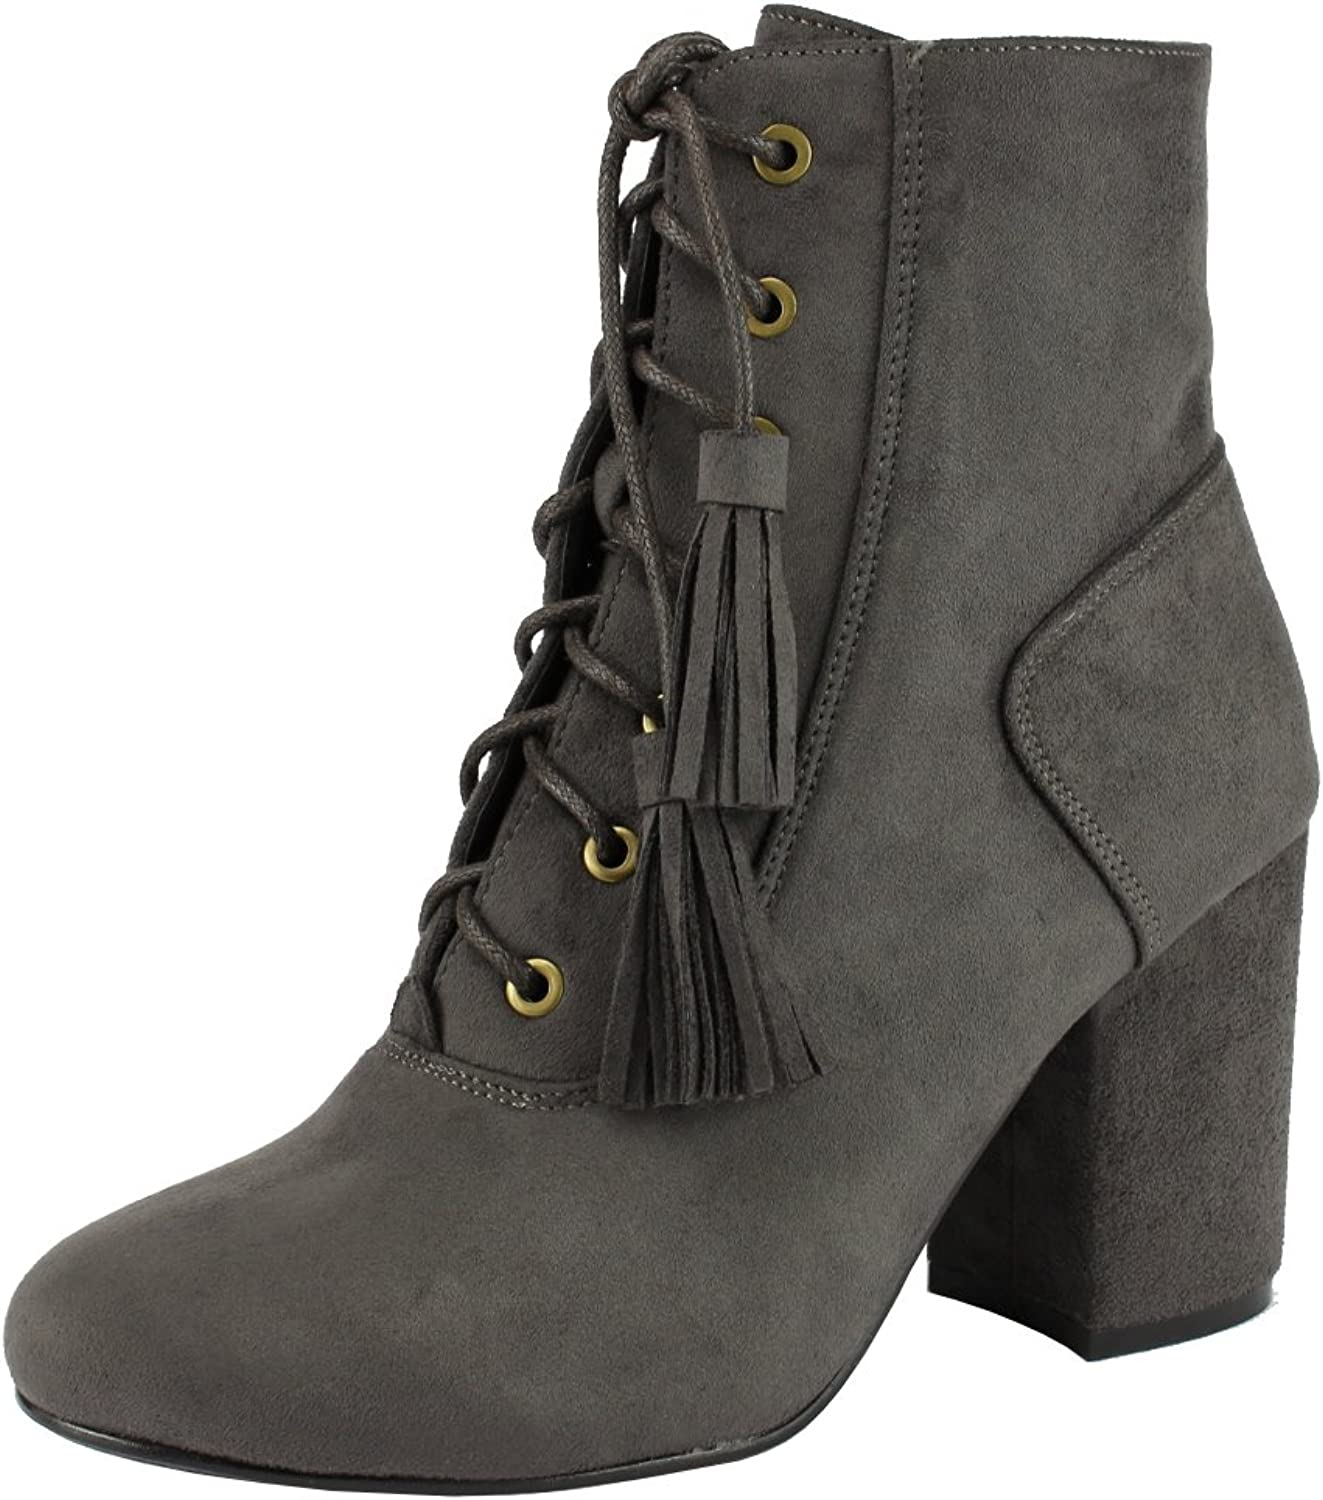 Nature Breeze Women's Closed Toe Lace-up Tassel Chunky Block Heel Ankle Bootie